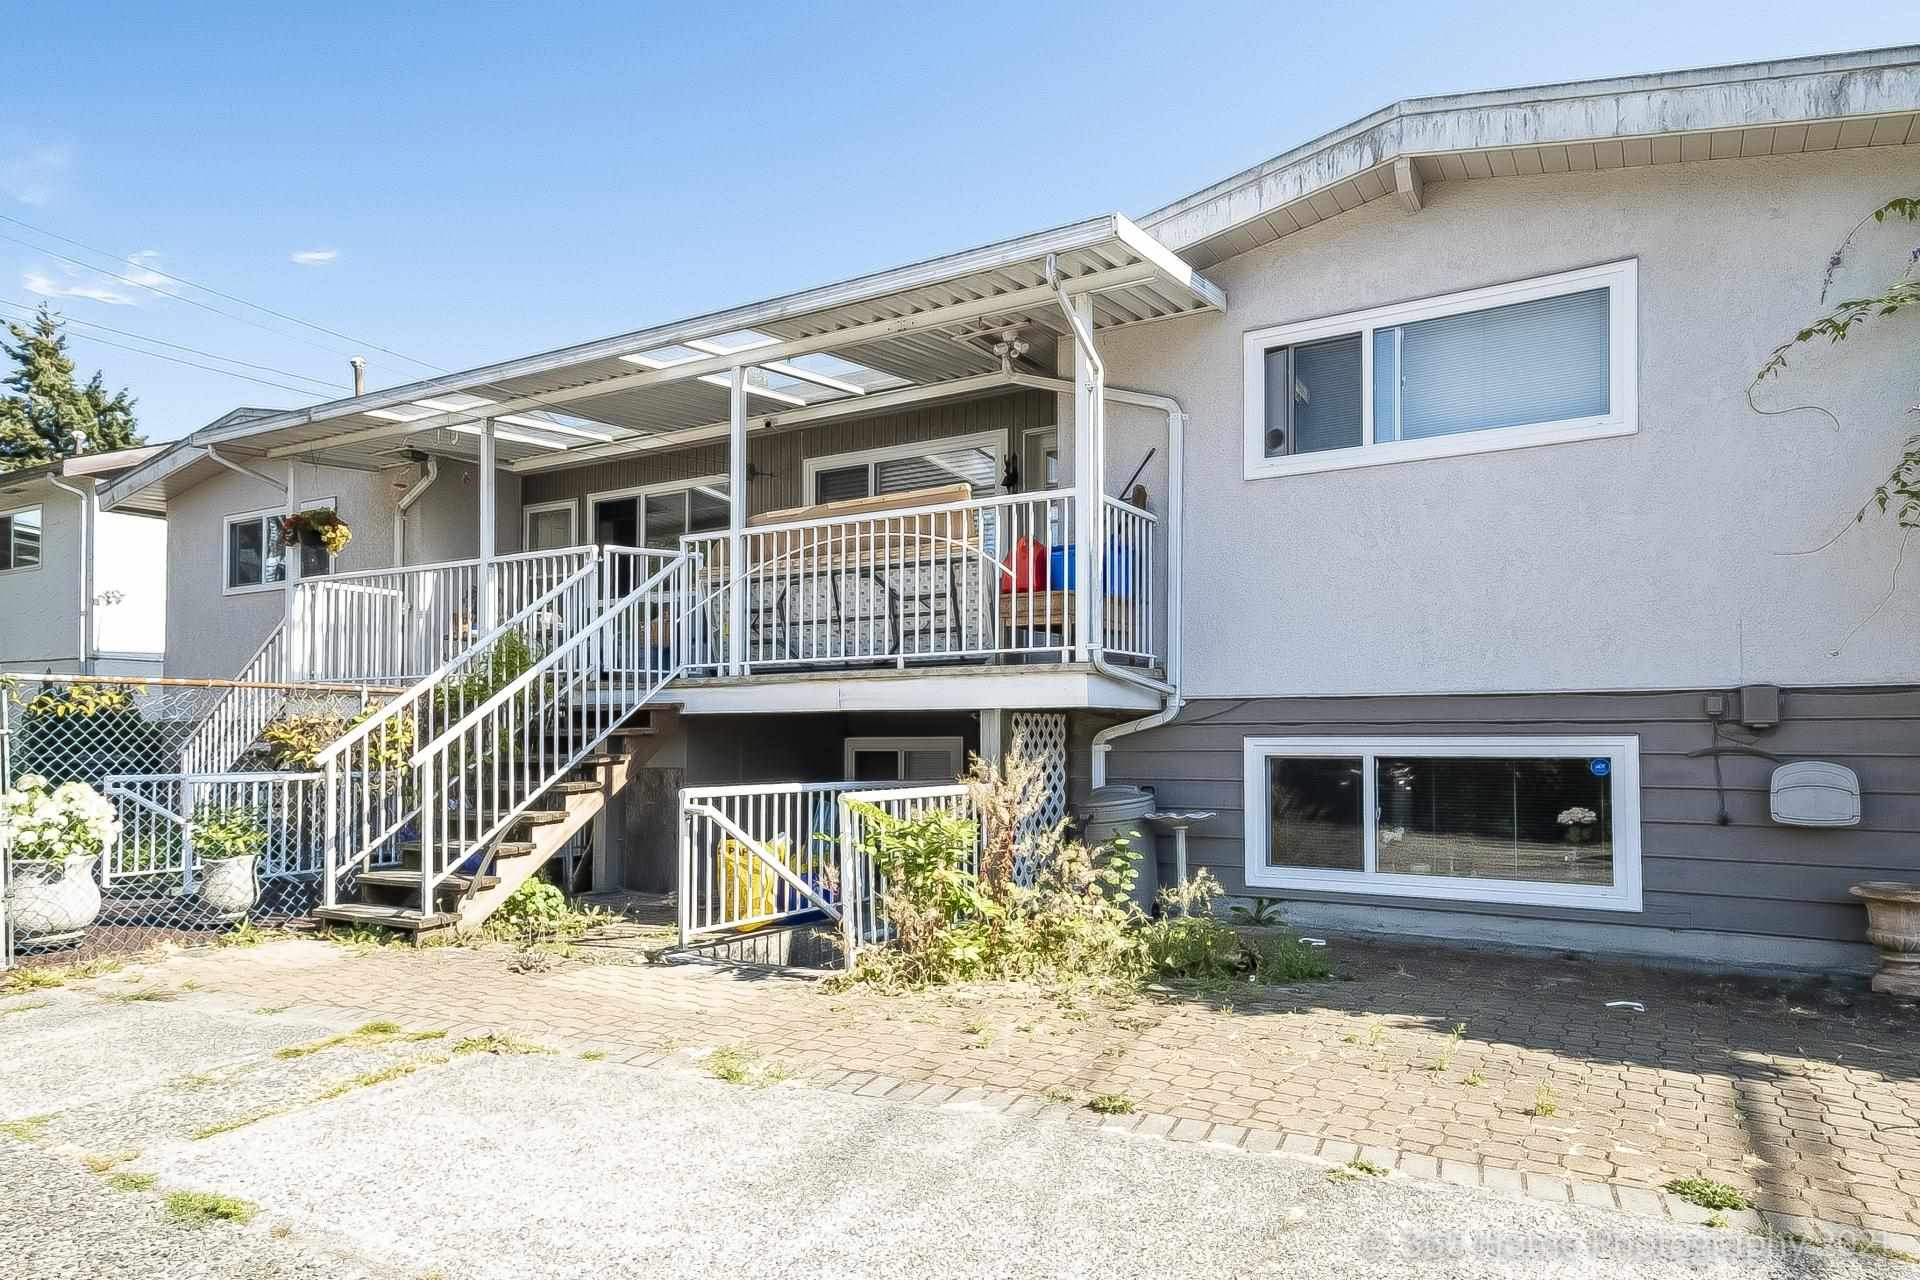 4135 4137 MOSCROP STREET - Burnaby Hospital Duplex for sale, 11 Bedrooms (R2605678) - #1